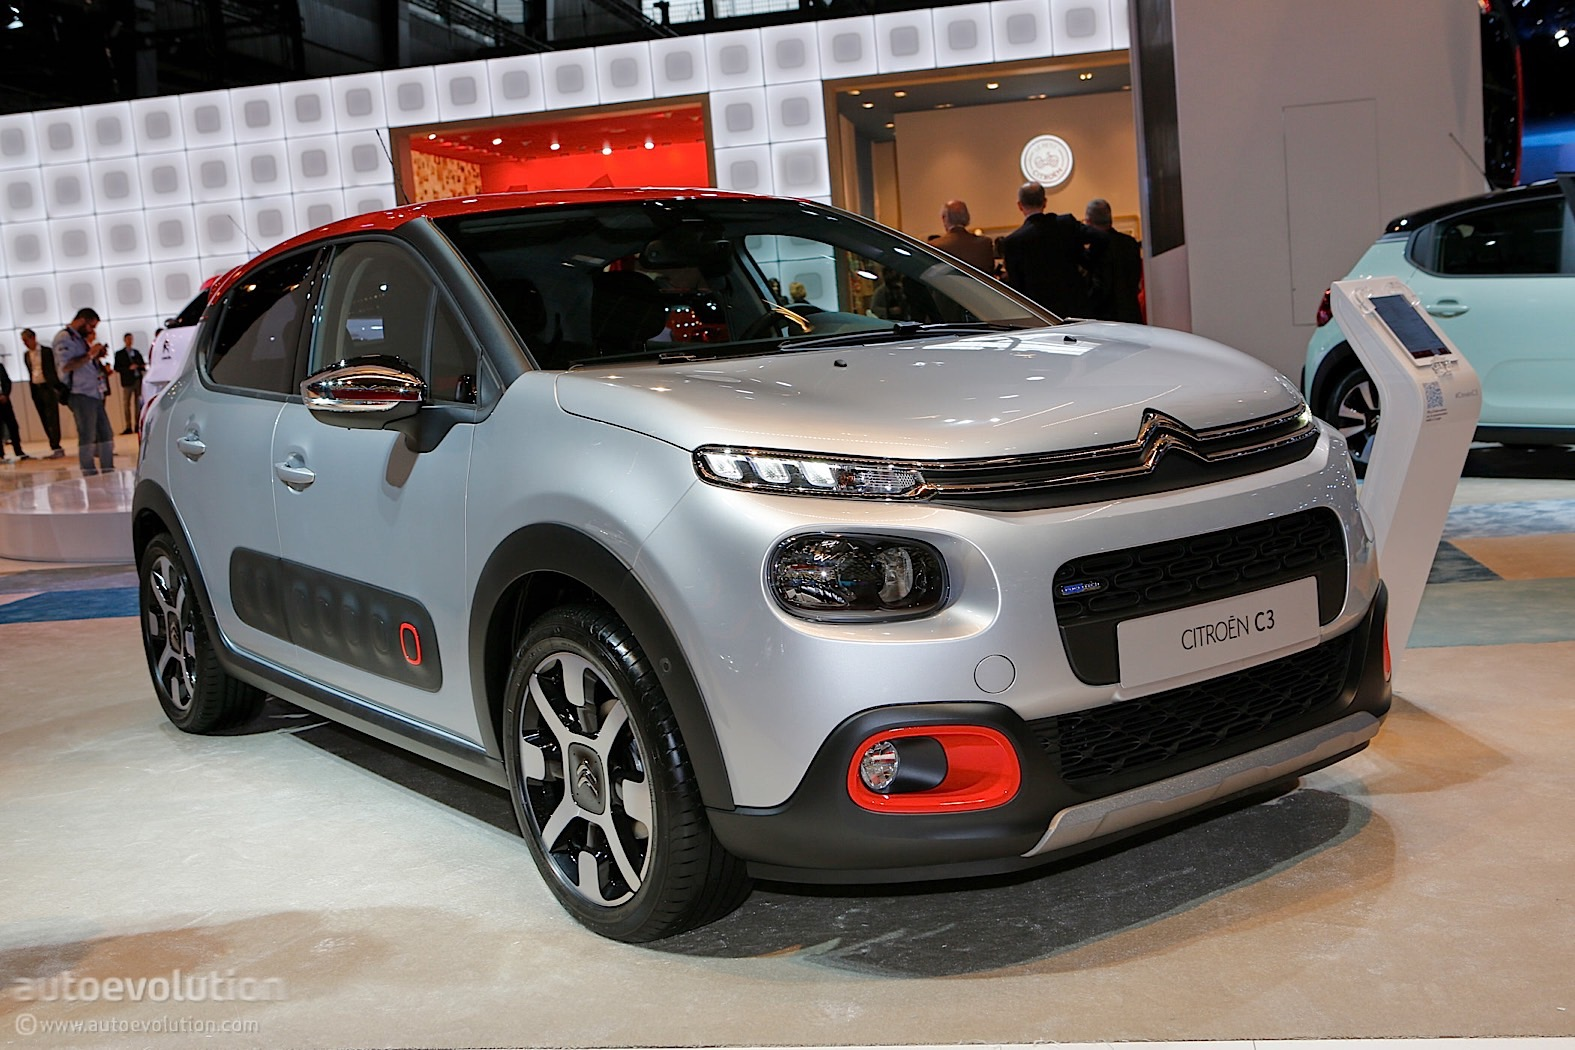 Citroen C4 Cactus Green >> 2017 Citroen C3 Kind of Looks Like Robocop's Helmet in ...